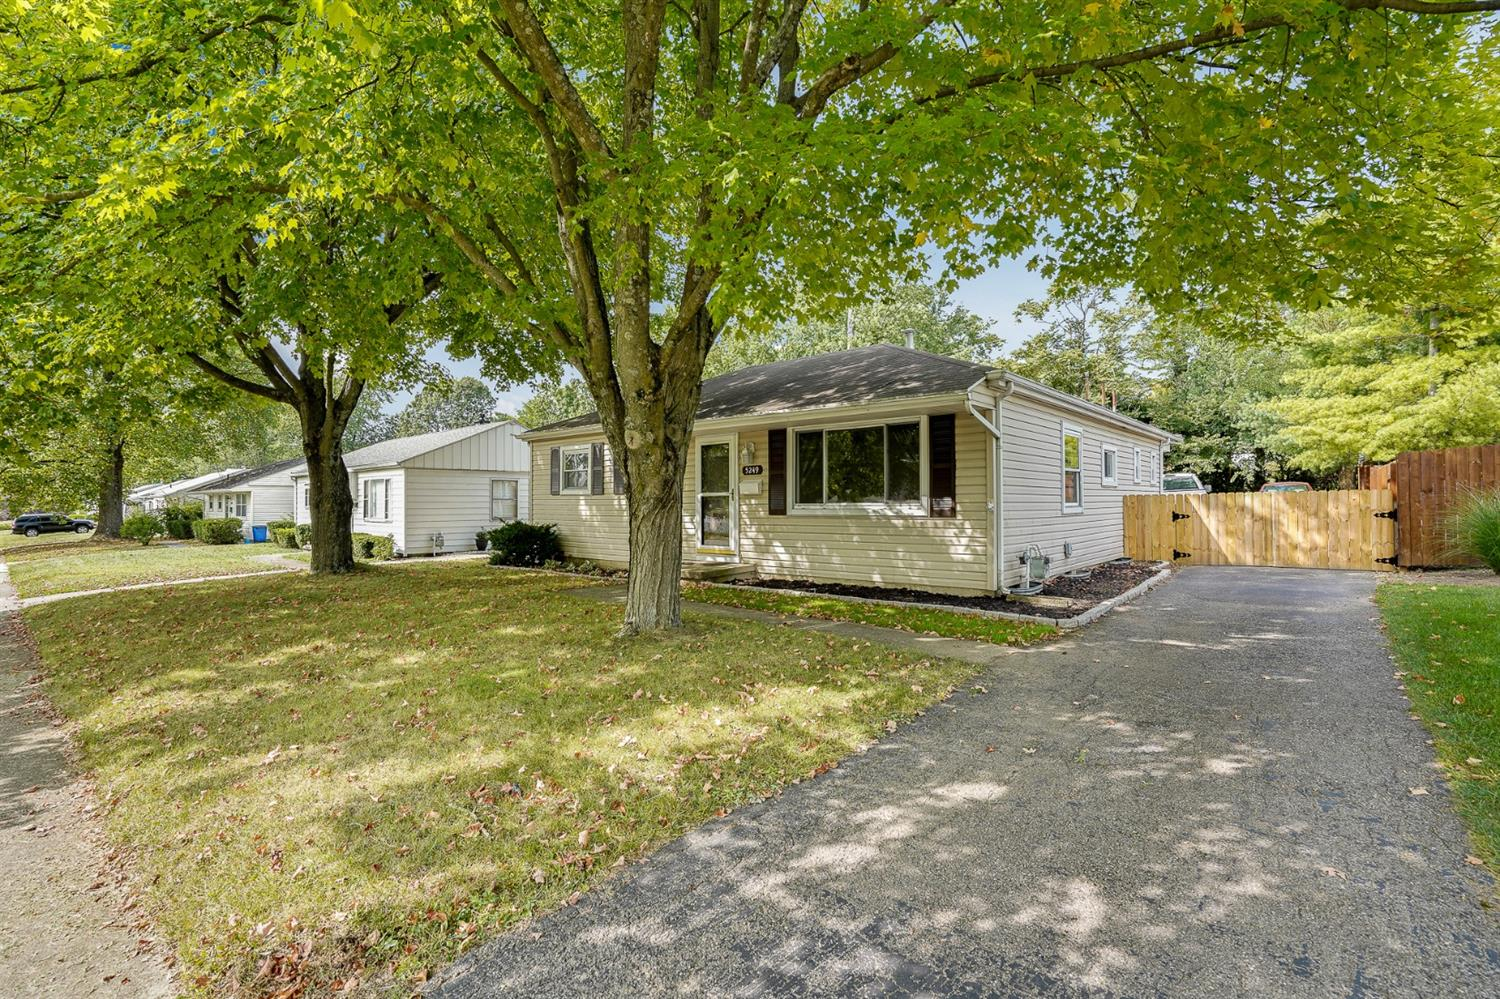 Photo 3 for 5249 Woodbine Ave Montgomery Co., OH 45432